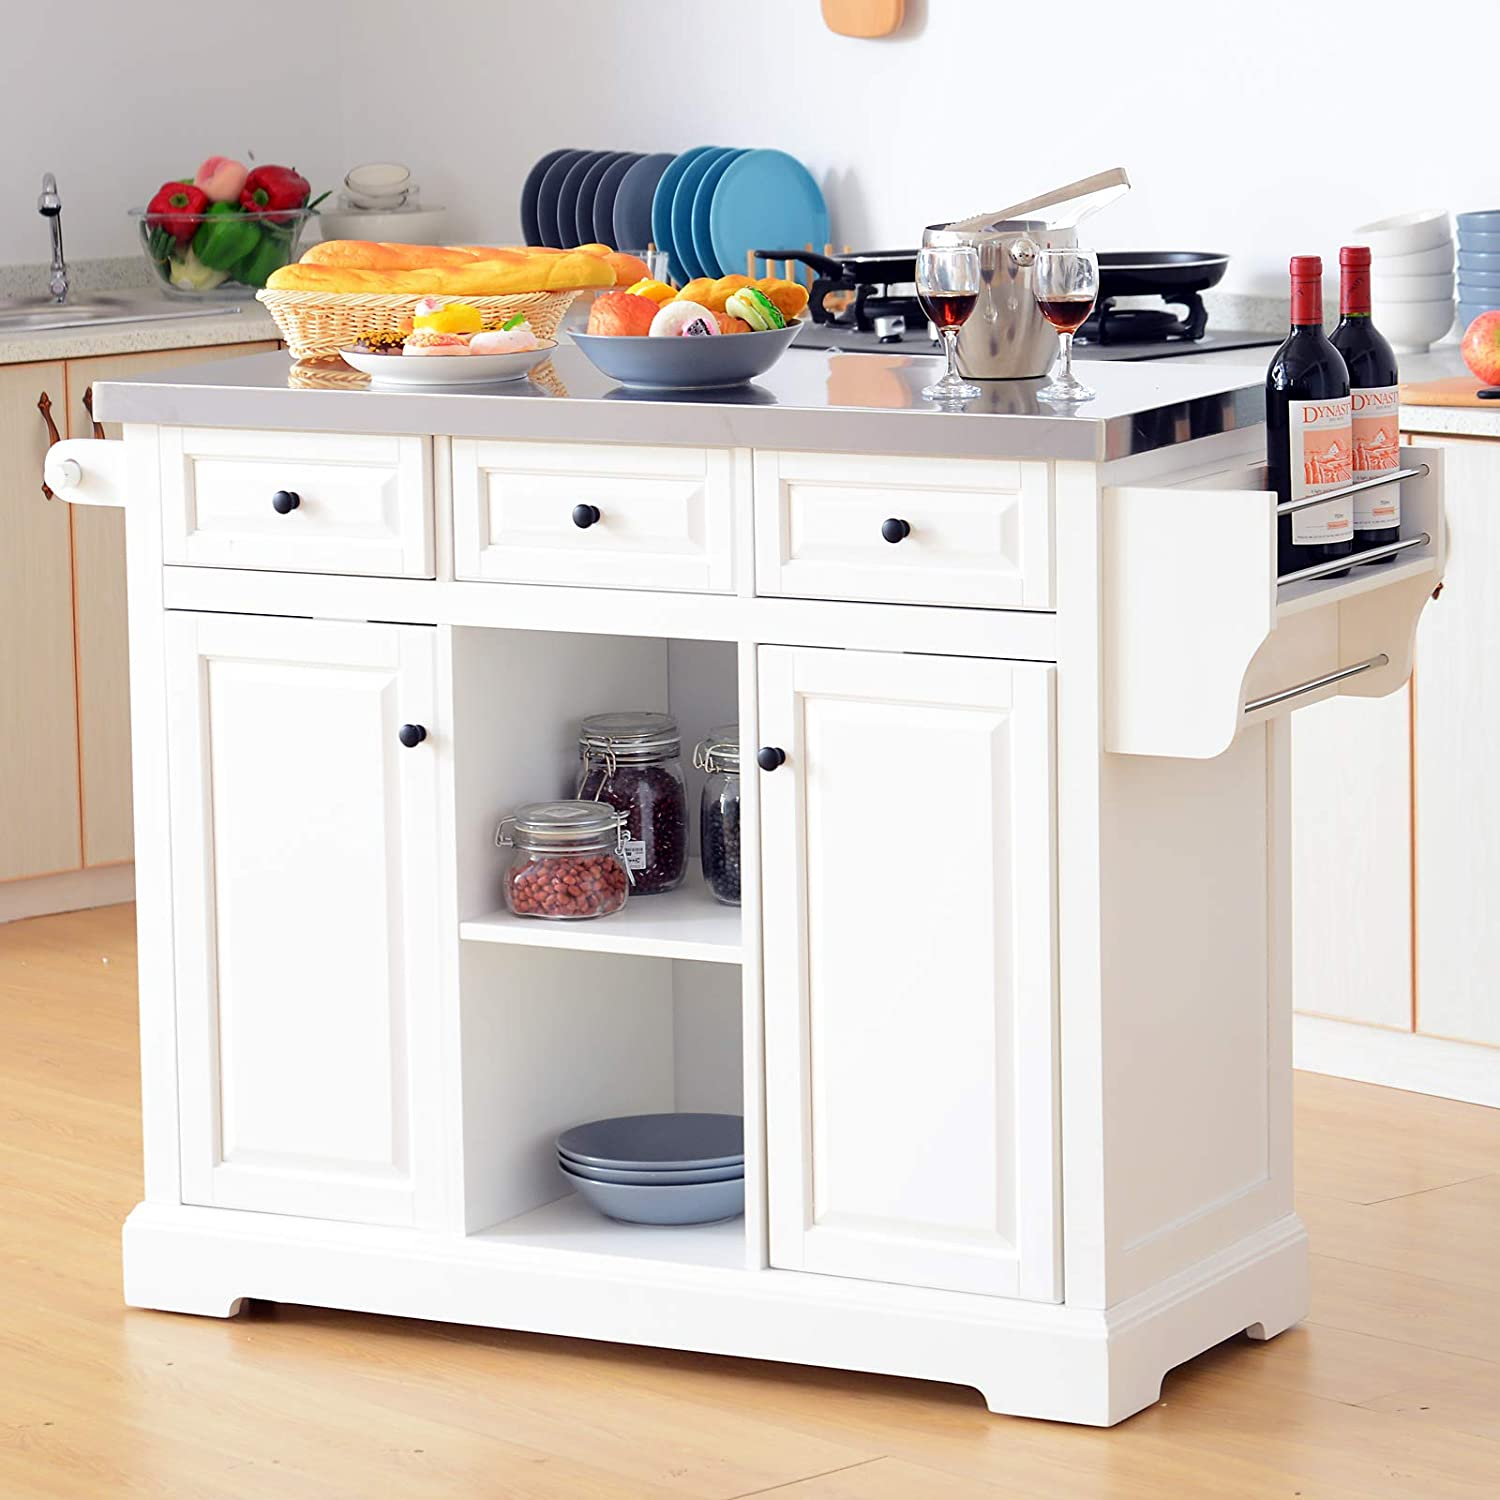 HOMCOM 51 x 18 x 36 Pine Wood Stainless Steel Portable Multi-Storage Rolling Kitchen Island Cart with Wheels – White